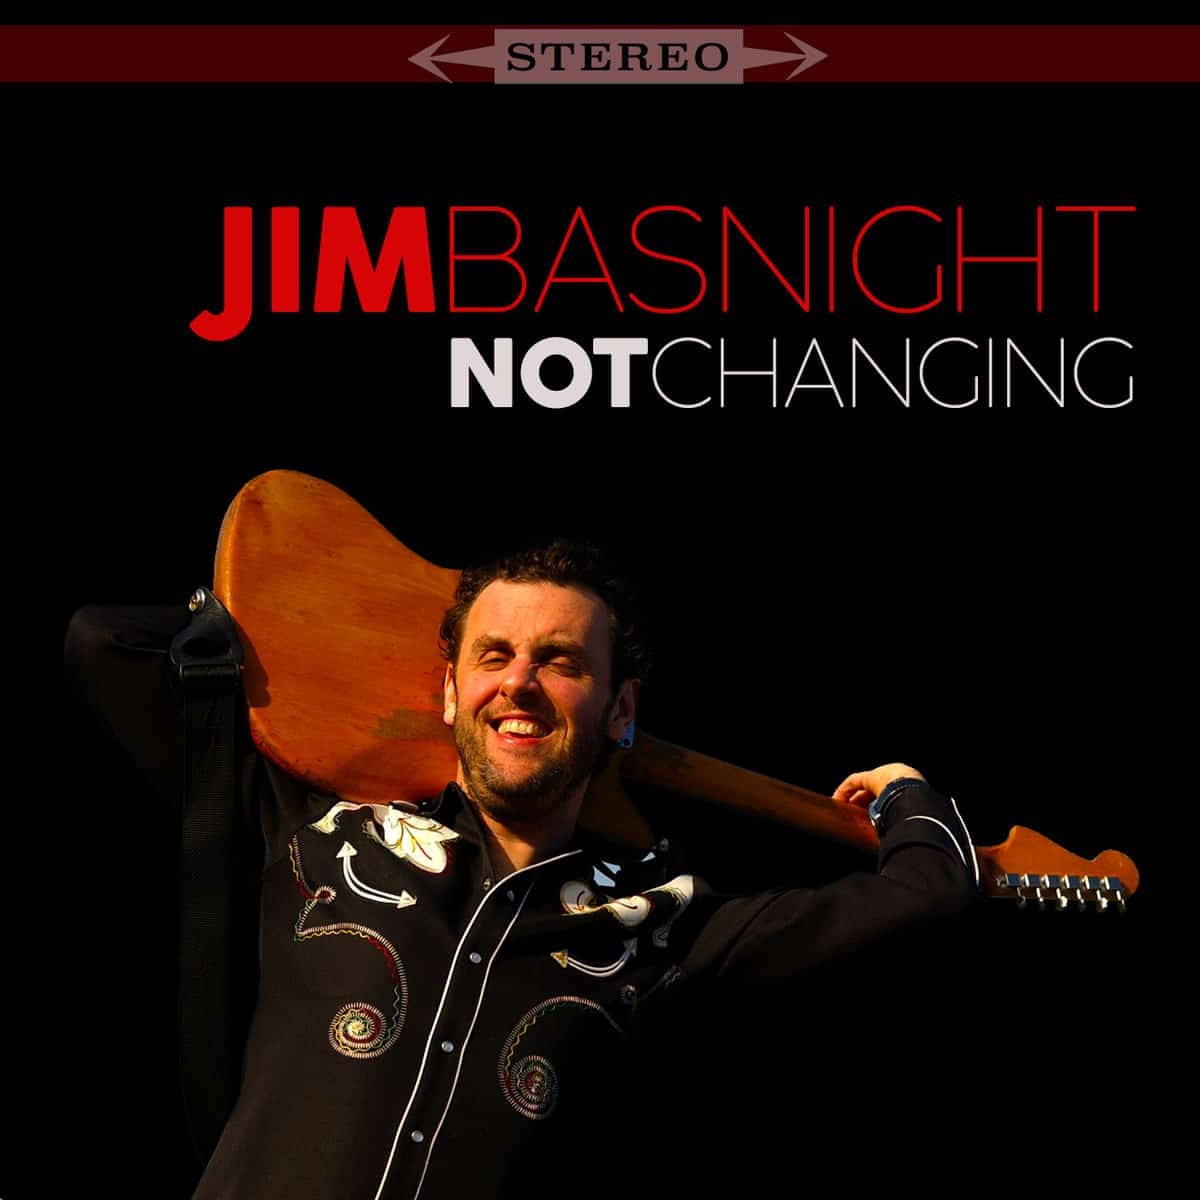 jim basnight folk rock